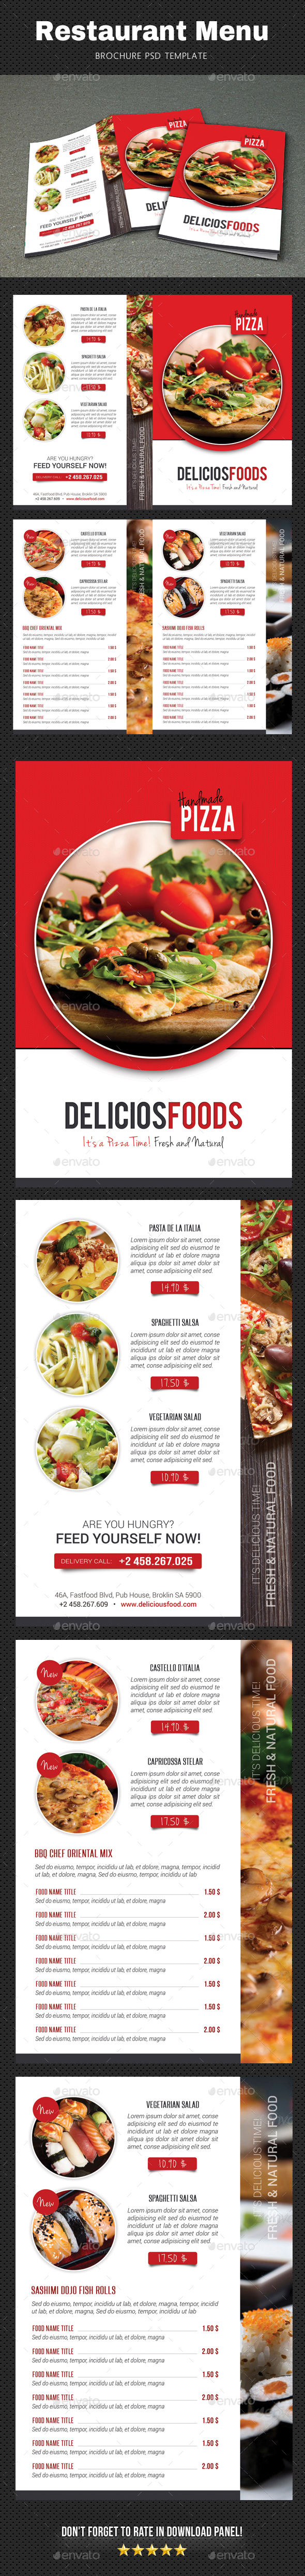 Restaurant Menu Brochure 2 - Food Menus Print Templates